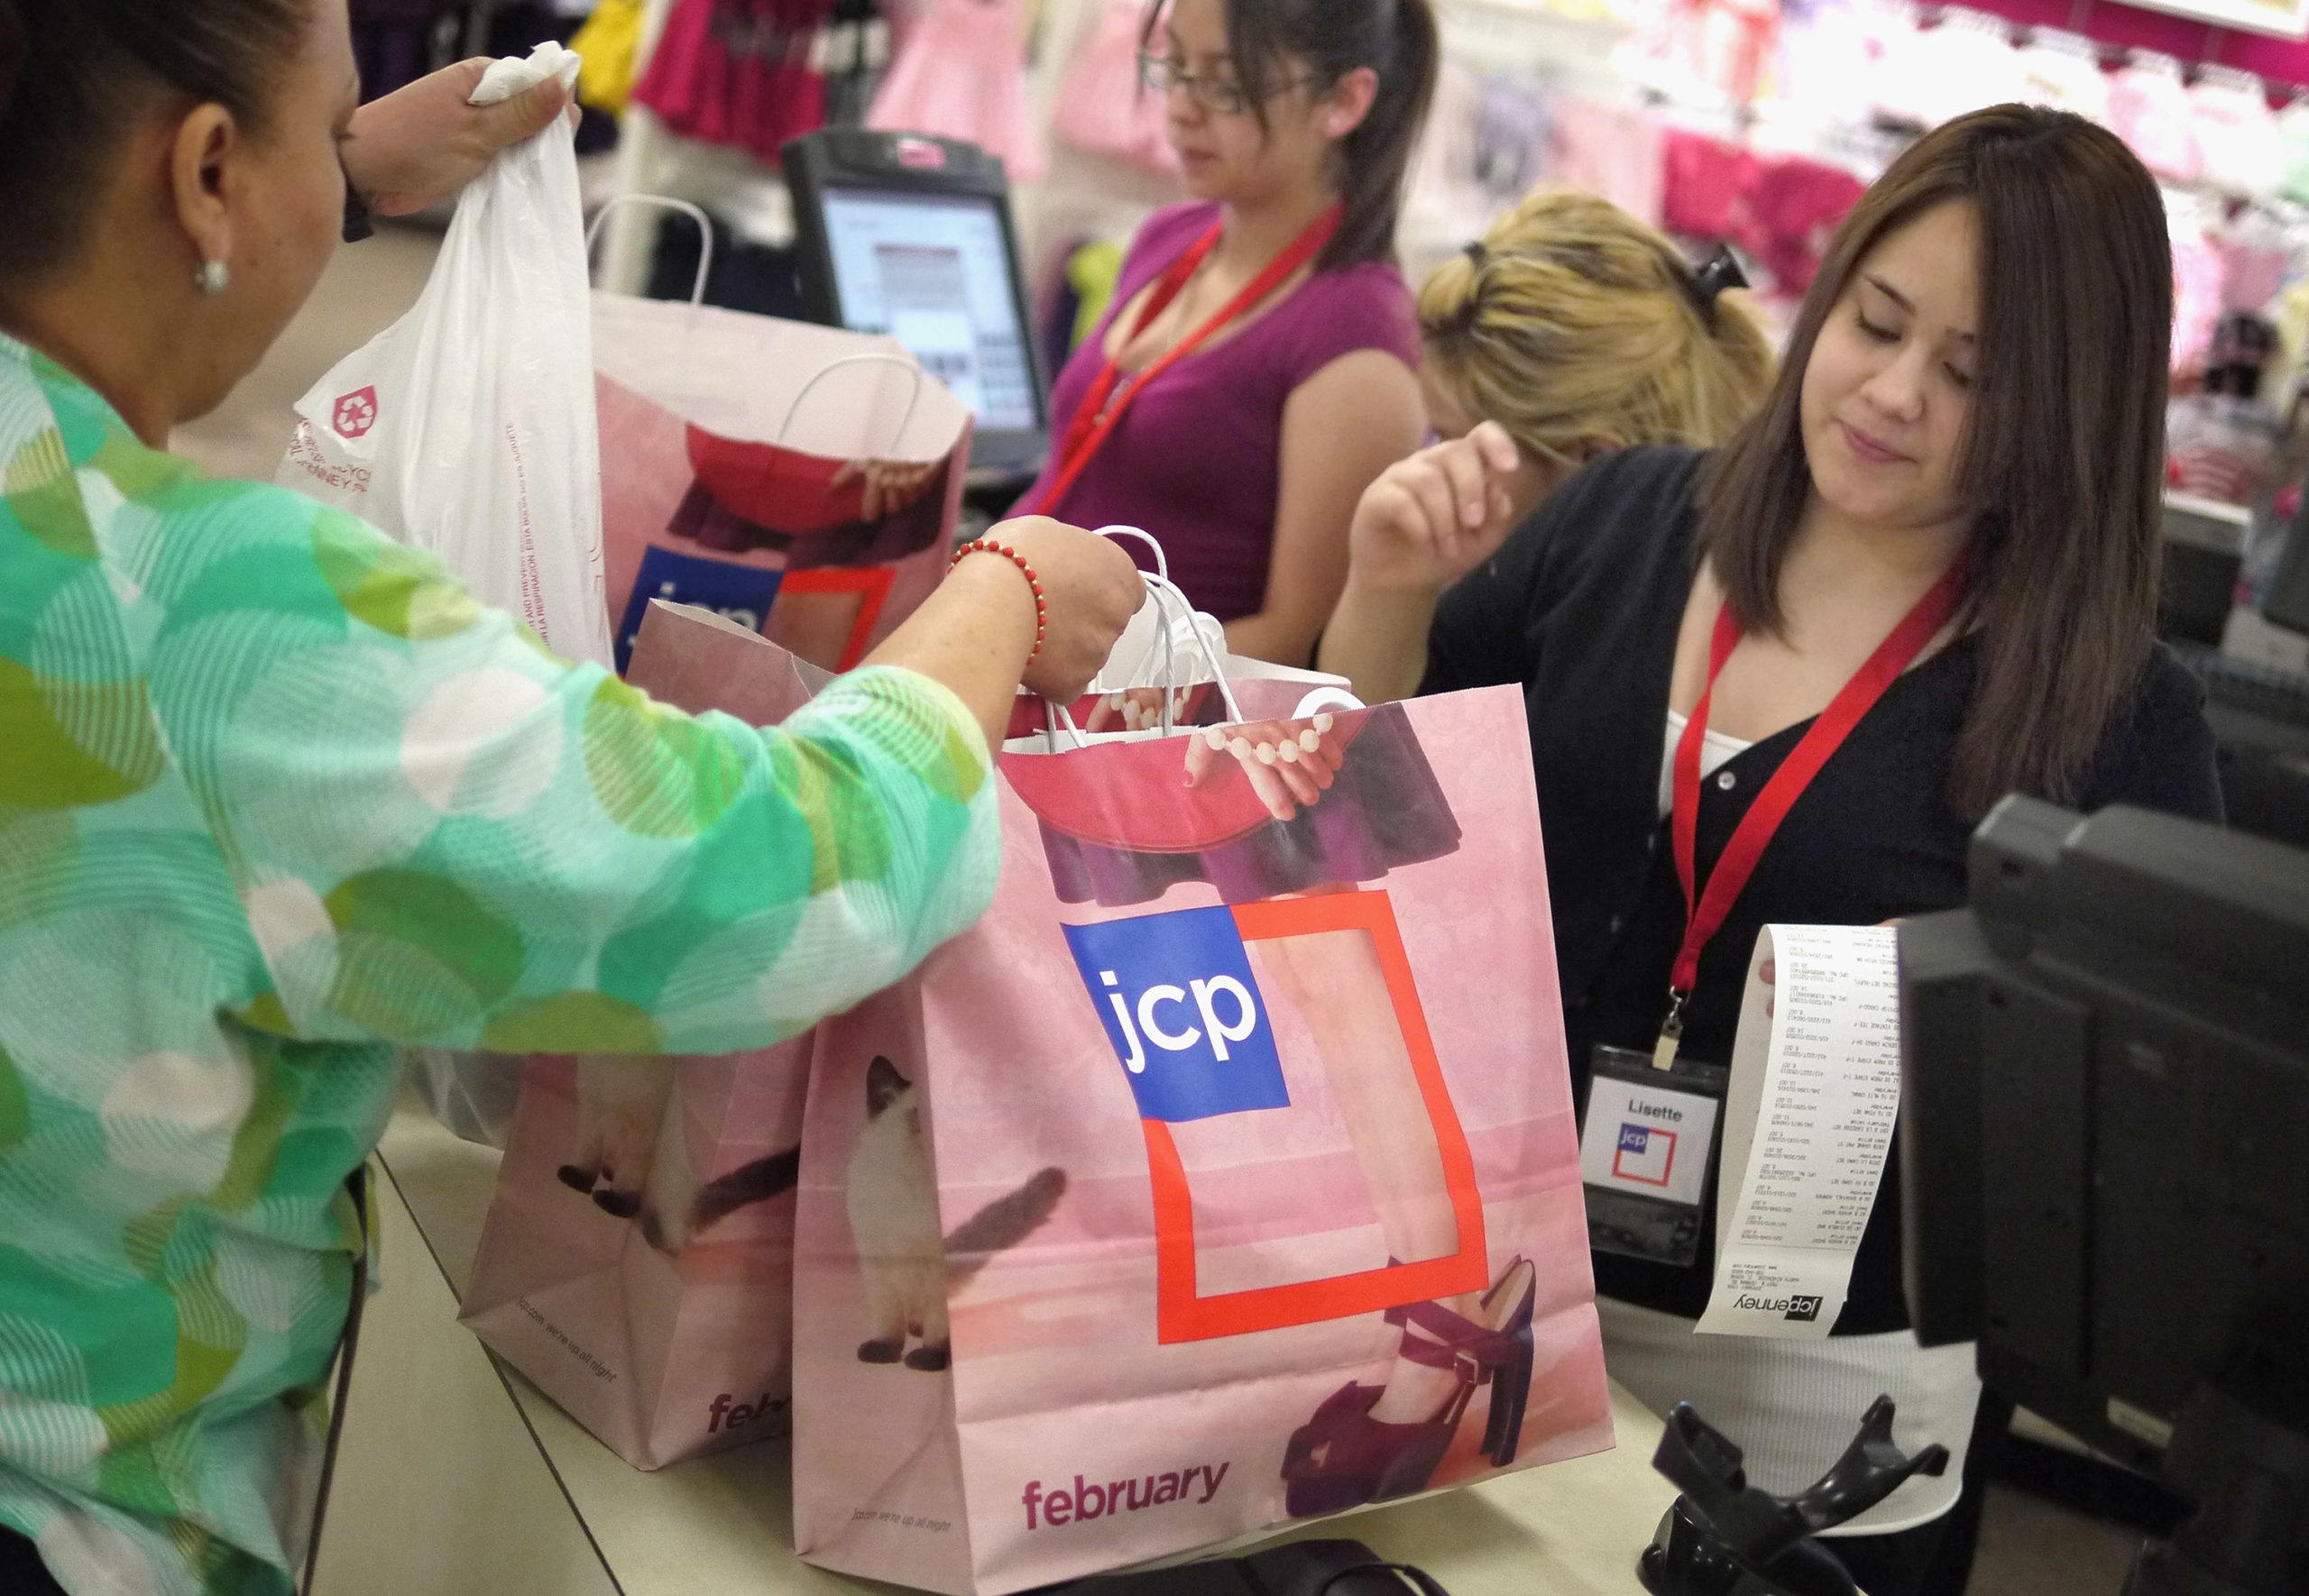 JC Penney's Revamps Brand Strategy